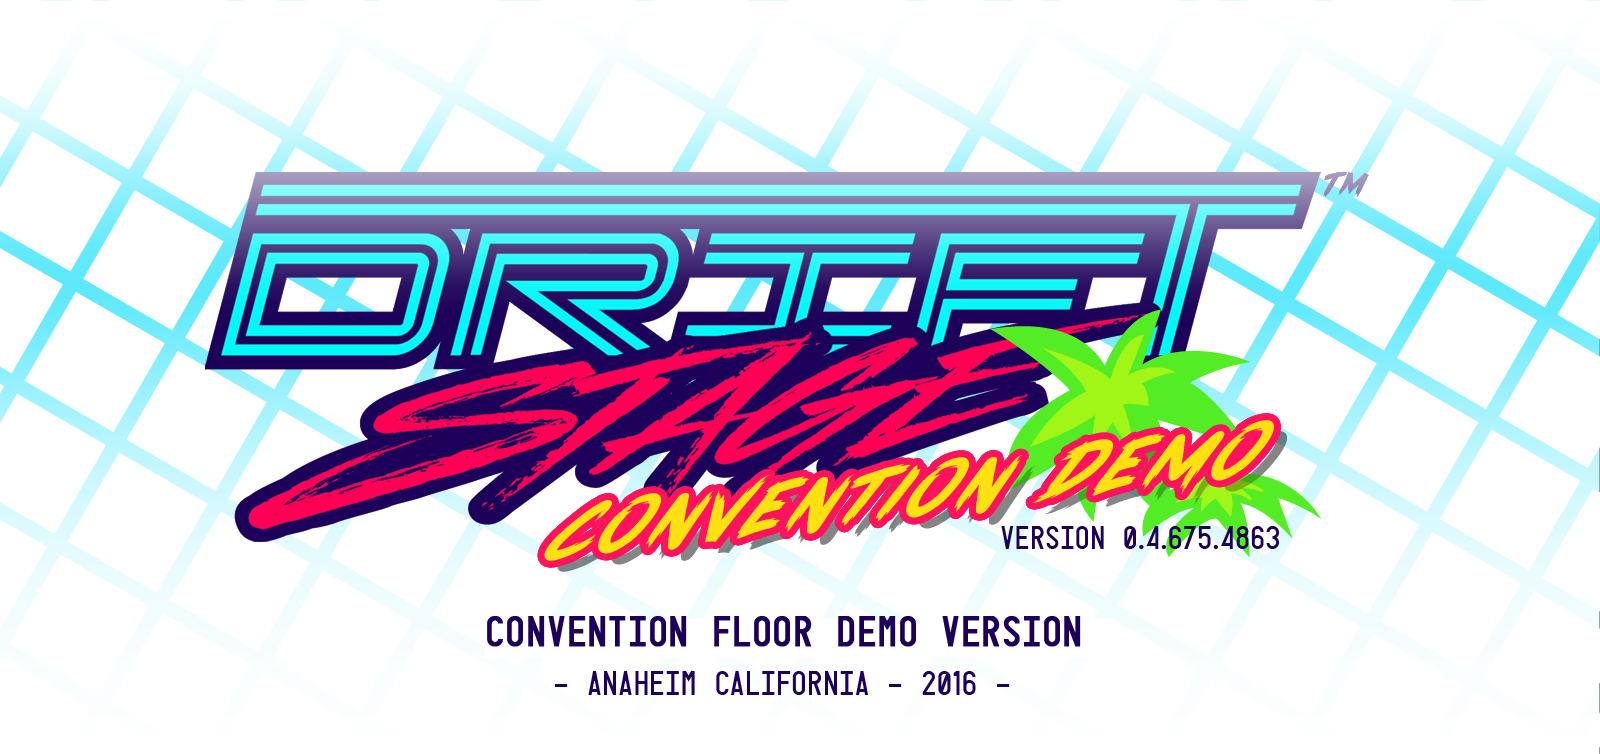 Drift Stage [ 2016 Convention Demo ]